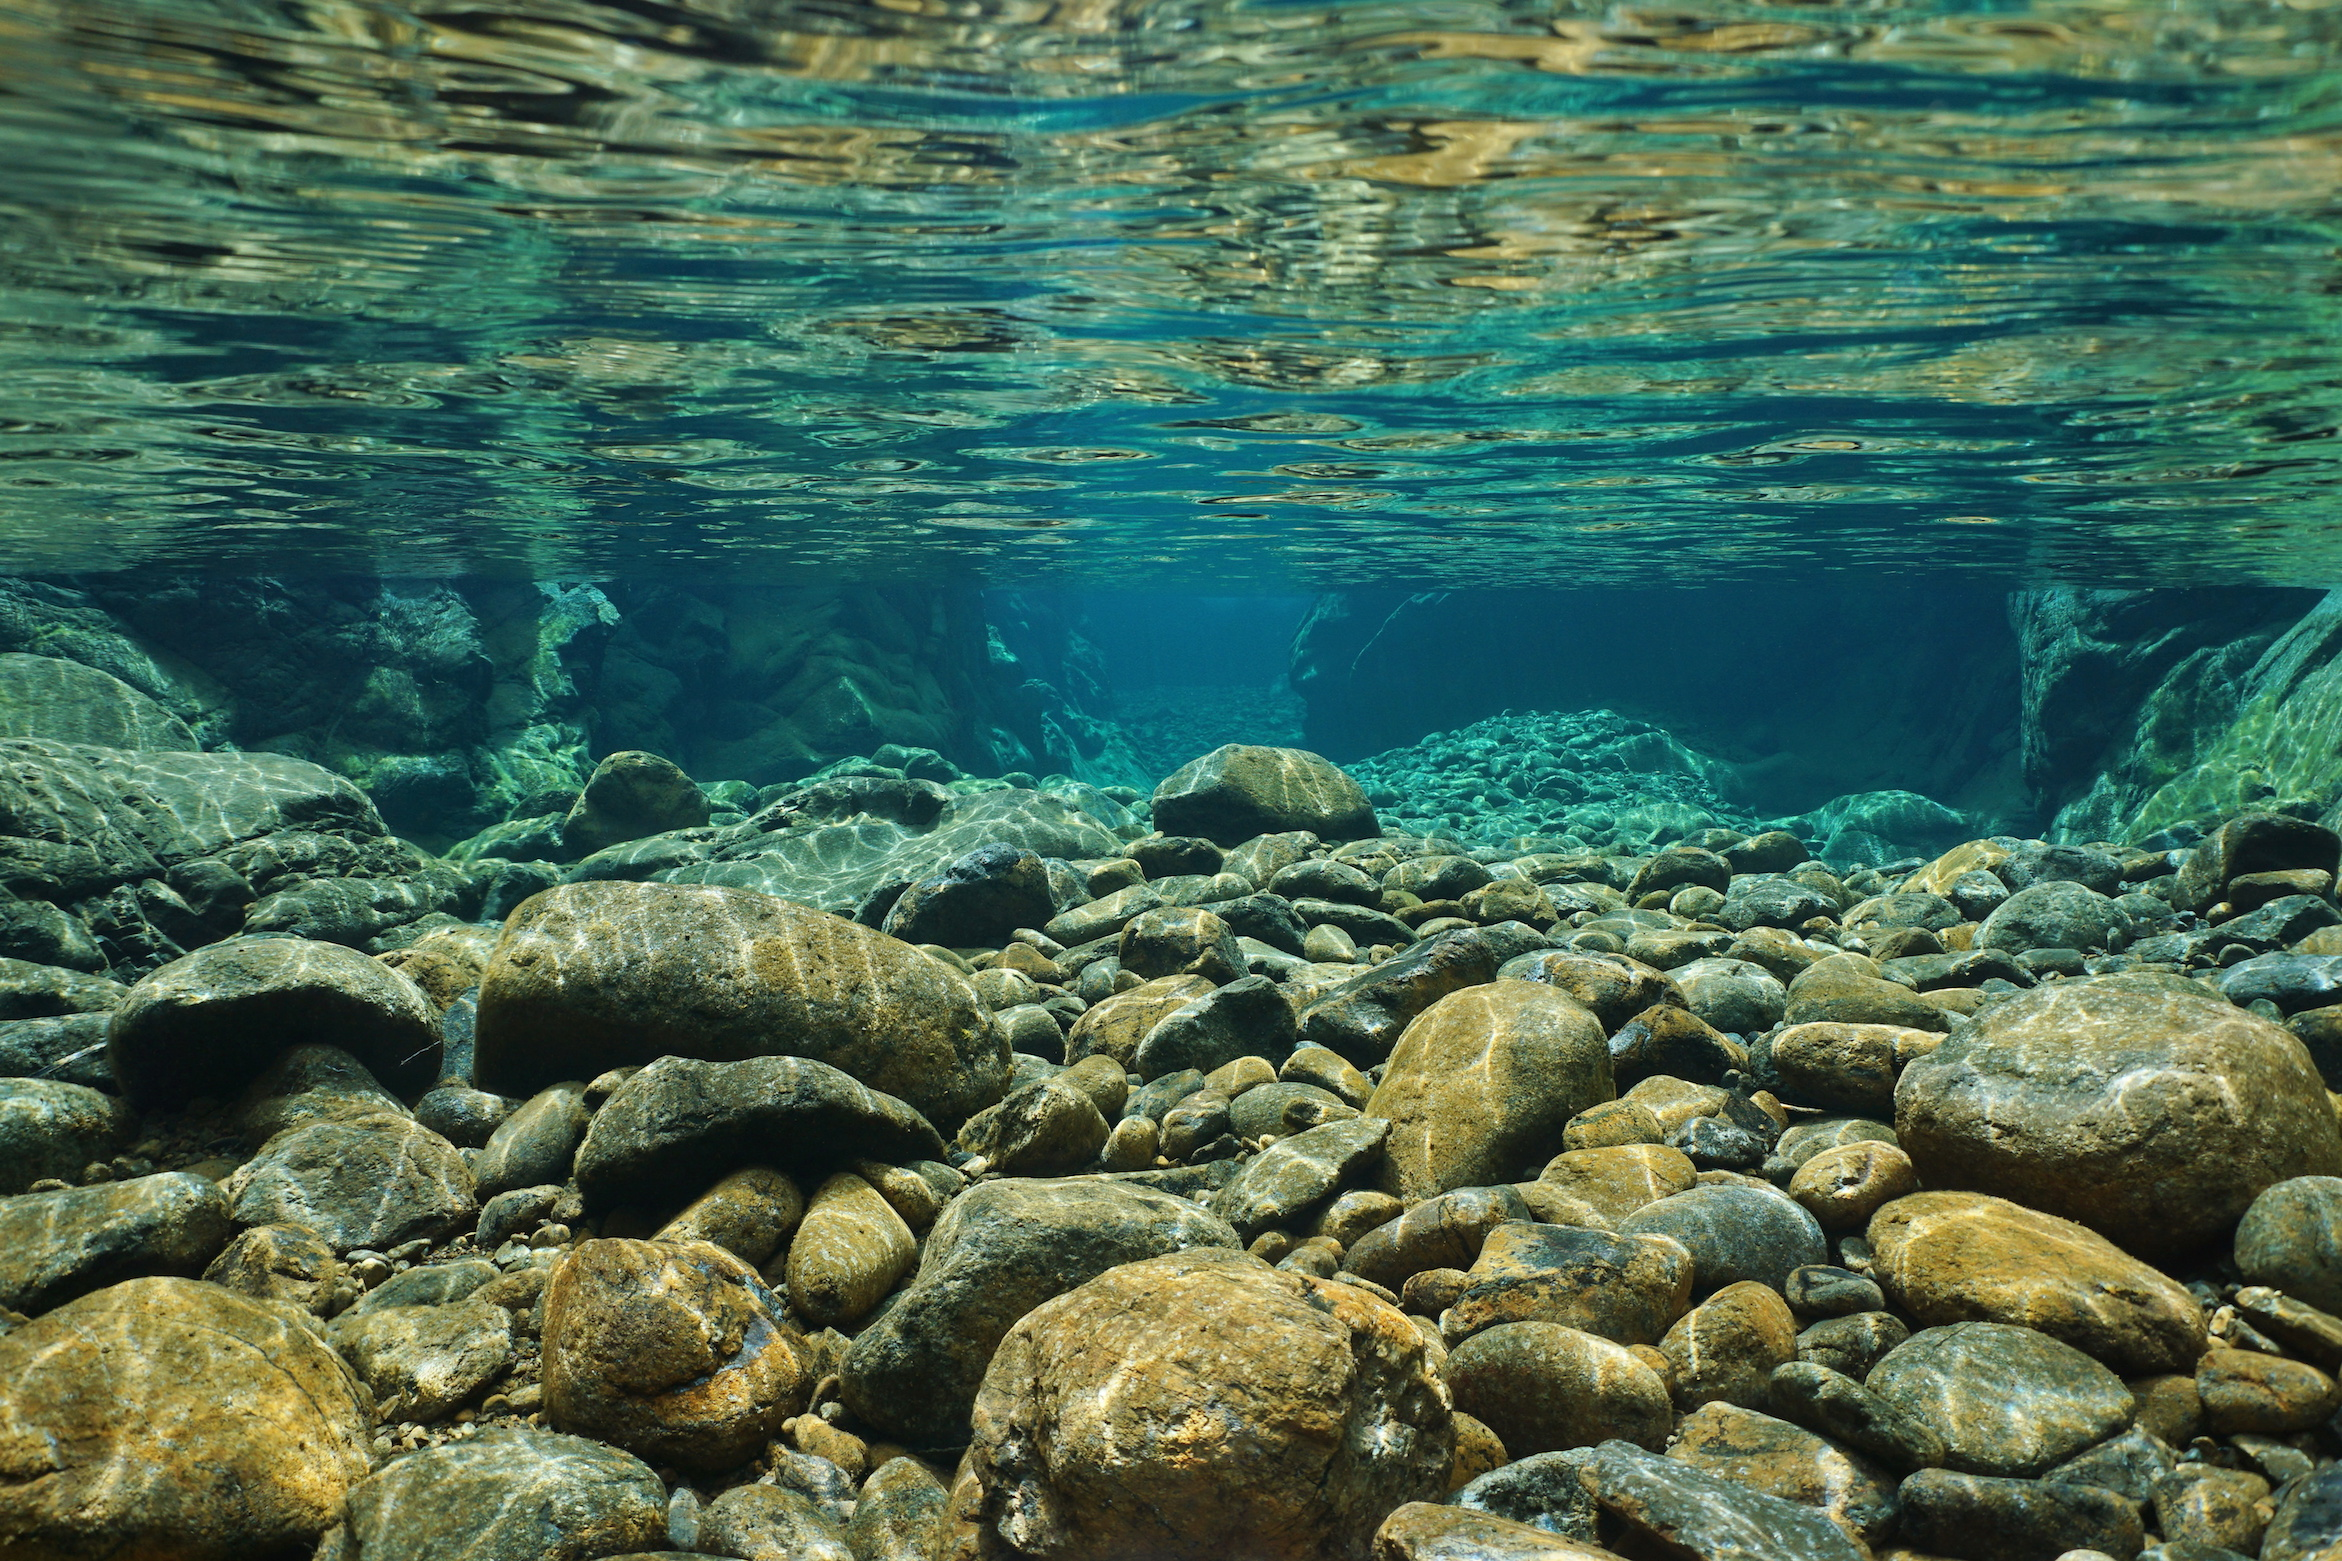 A new study conducted by researchers from the University of Minnesota has found that freshwater ecosystems can filter out both carbon and phosphorous pollution before the water reaches the ocean.